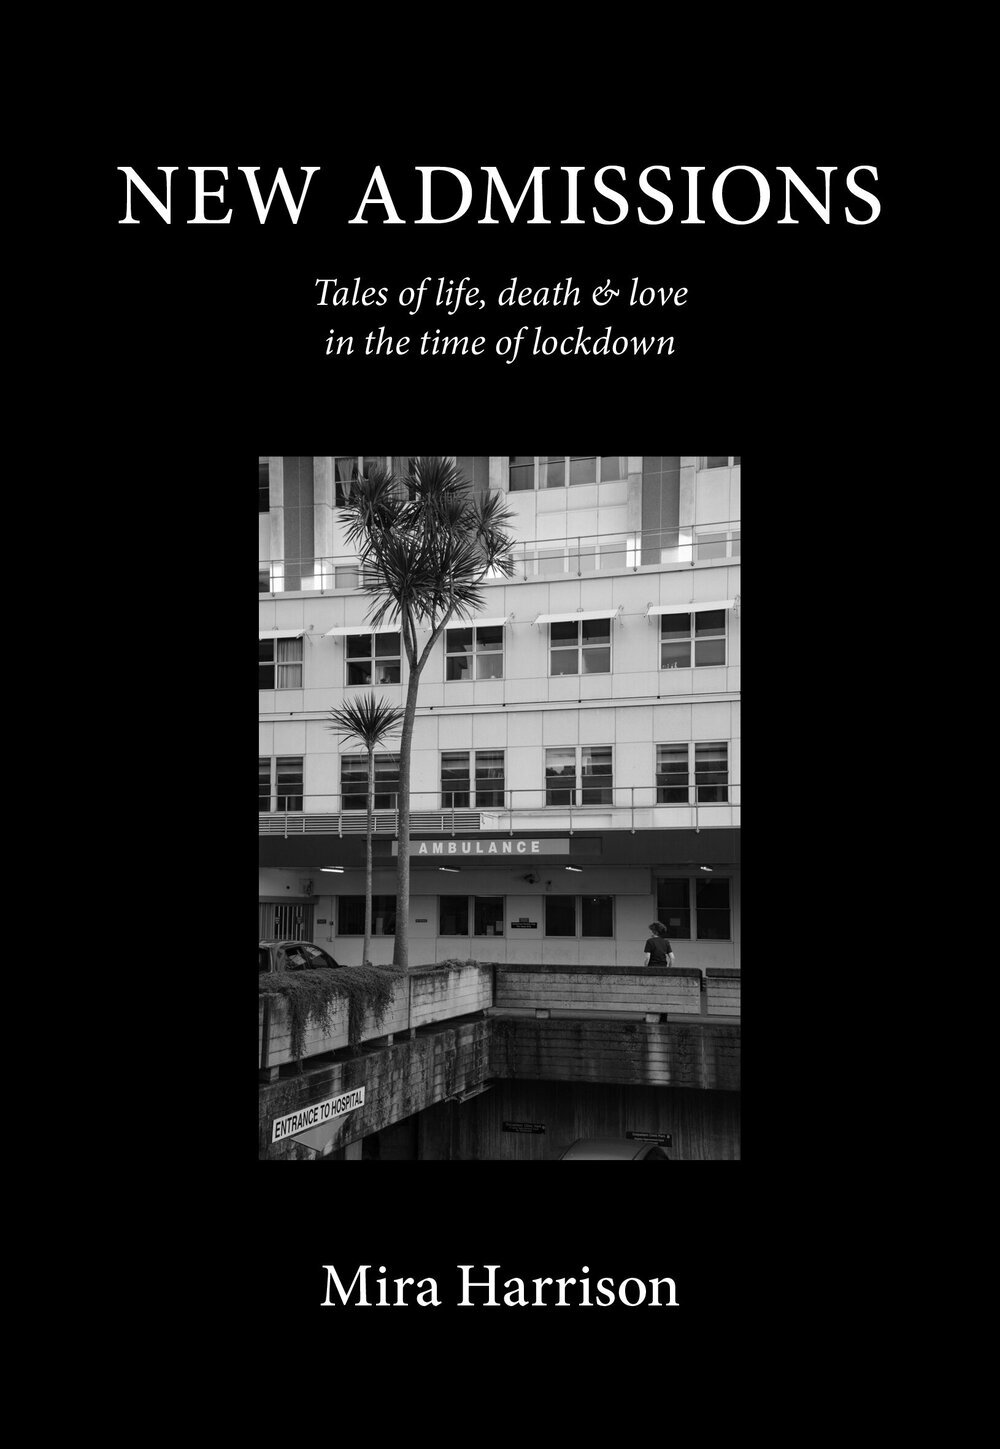 New Admissions: Tales of life, death & love in the time of lockdown